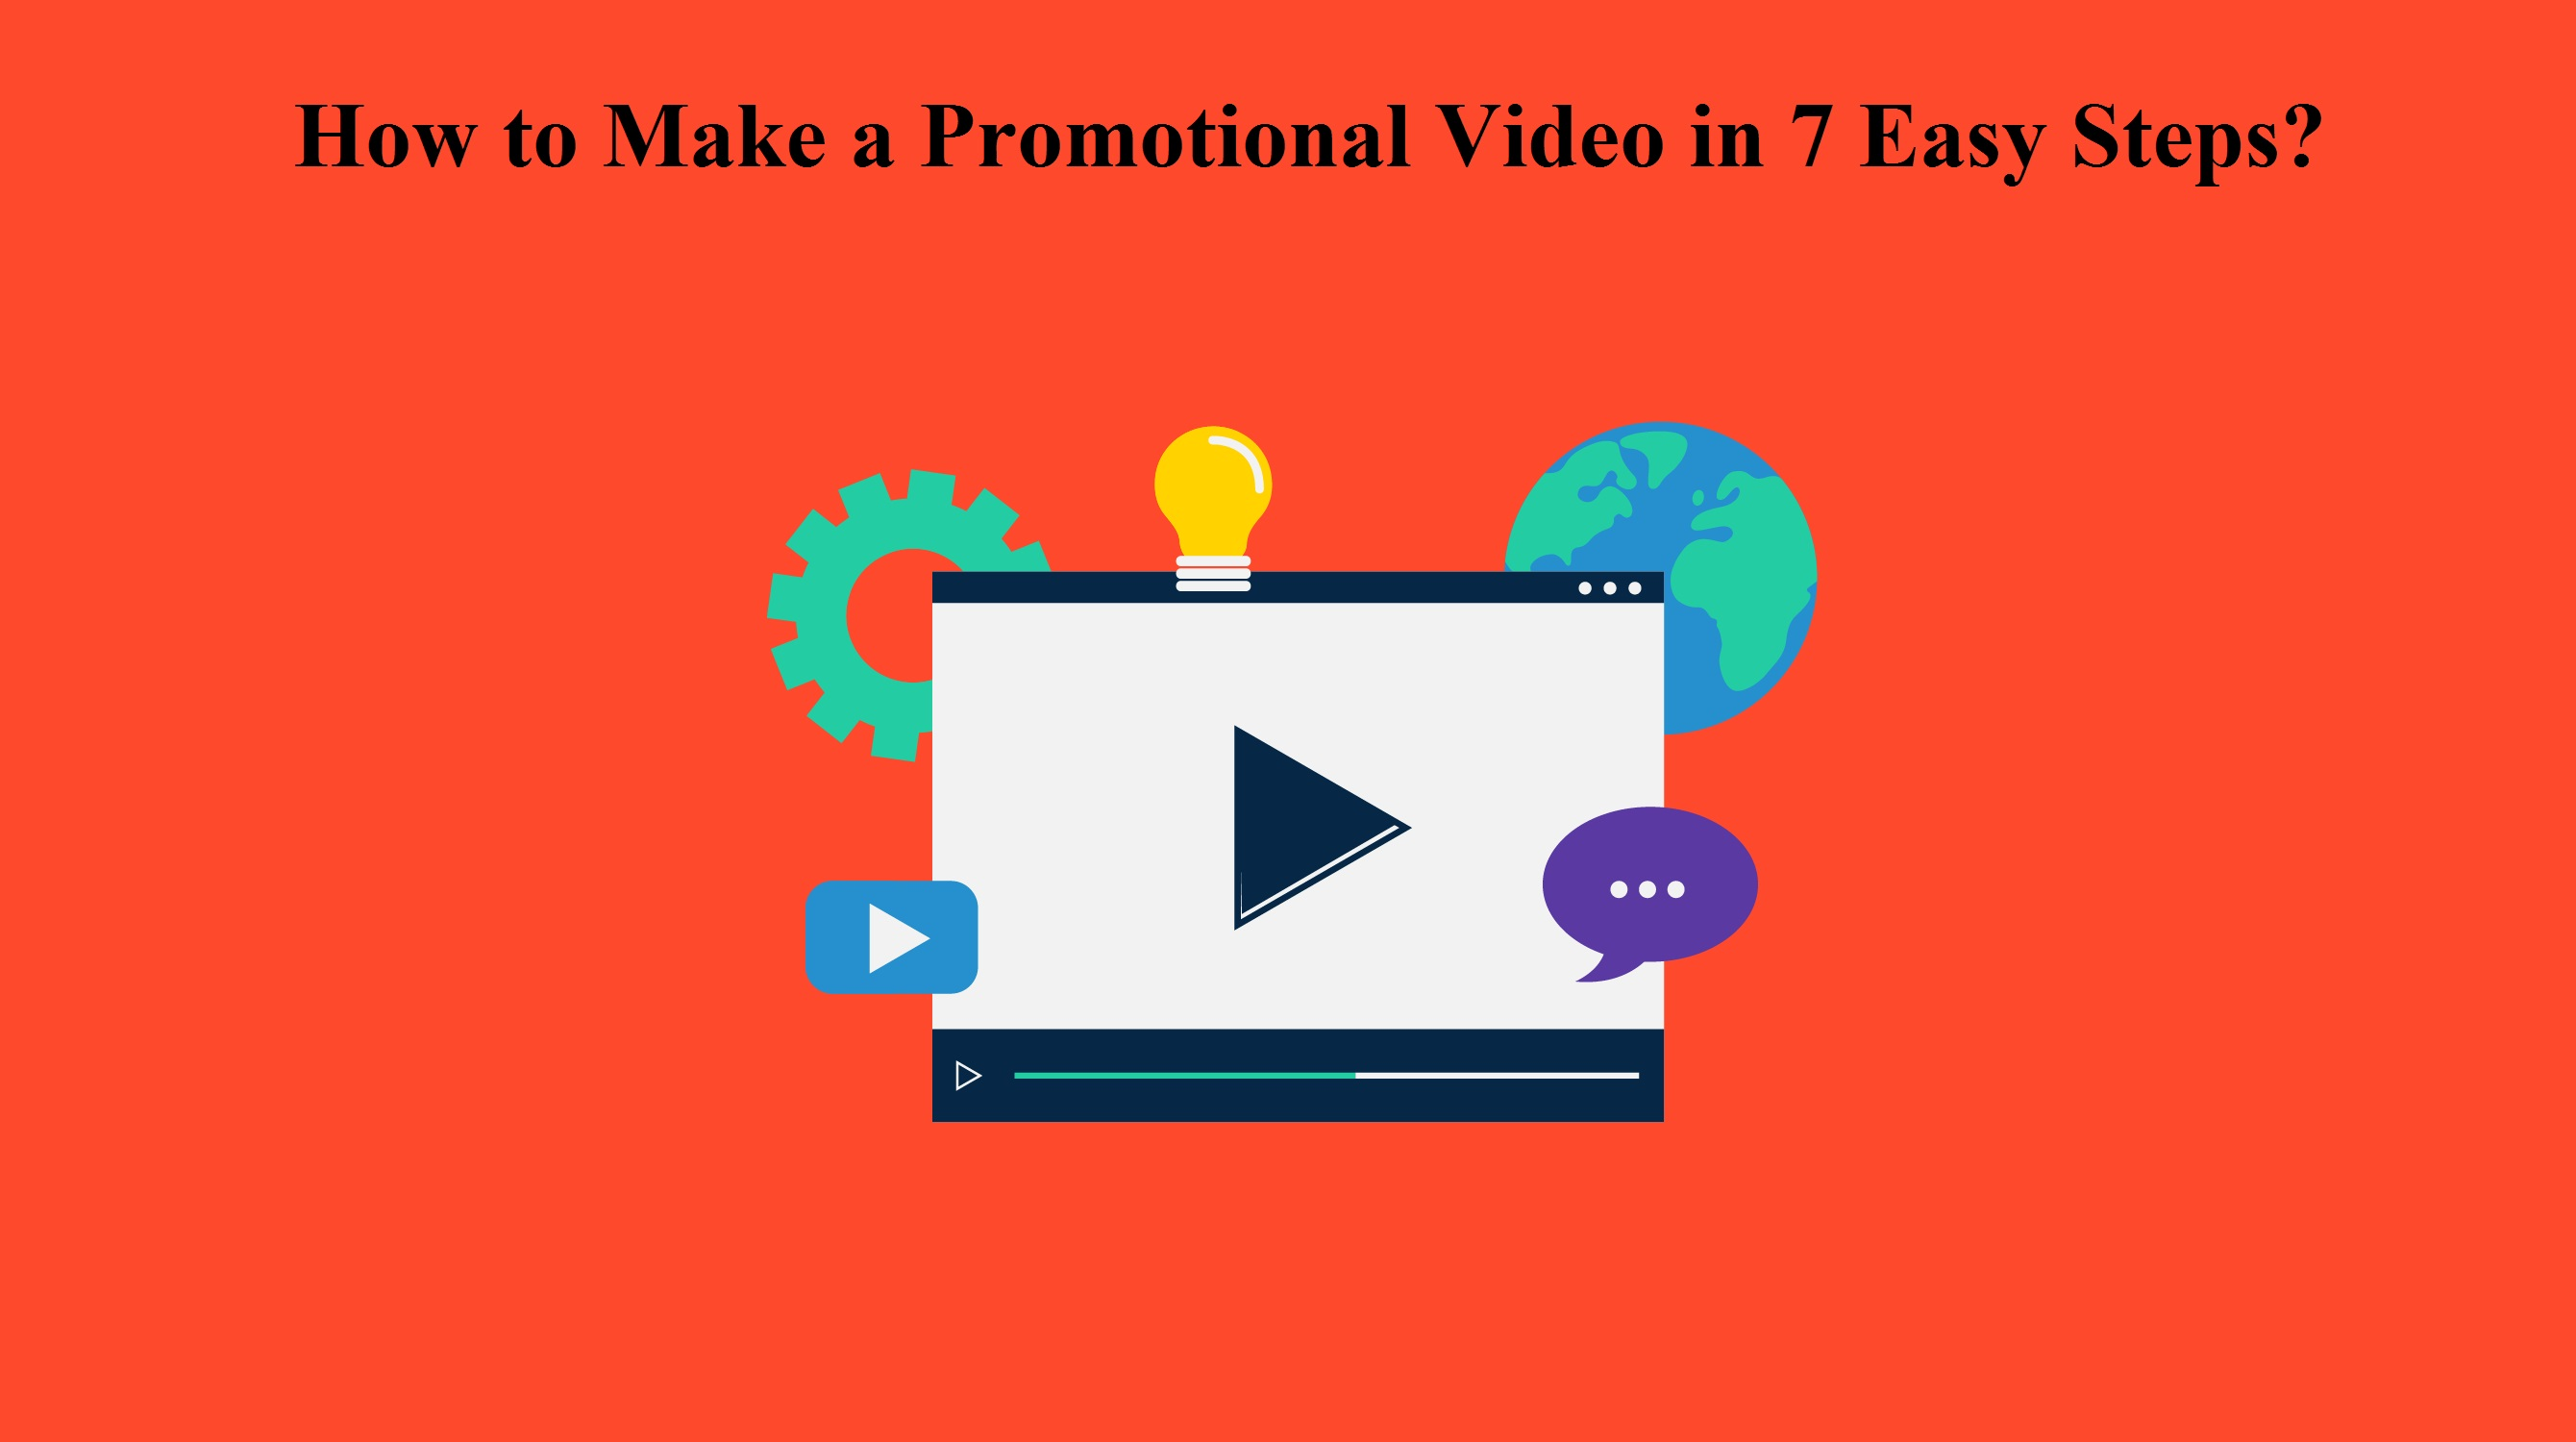 How to Make a Promotional Video in 7 Easy Steps